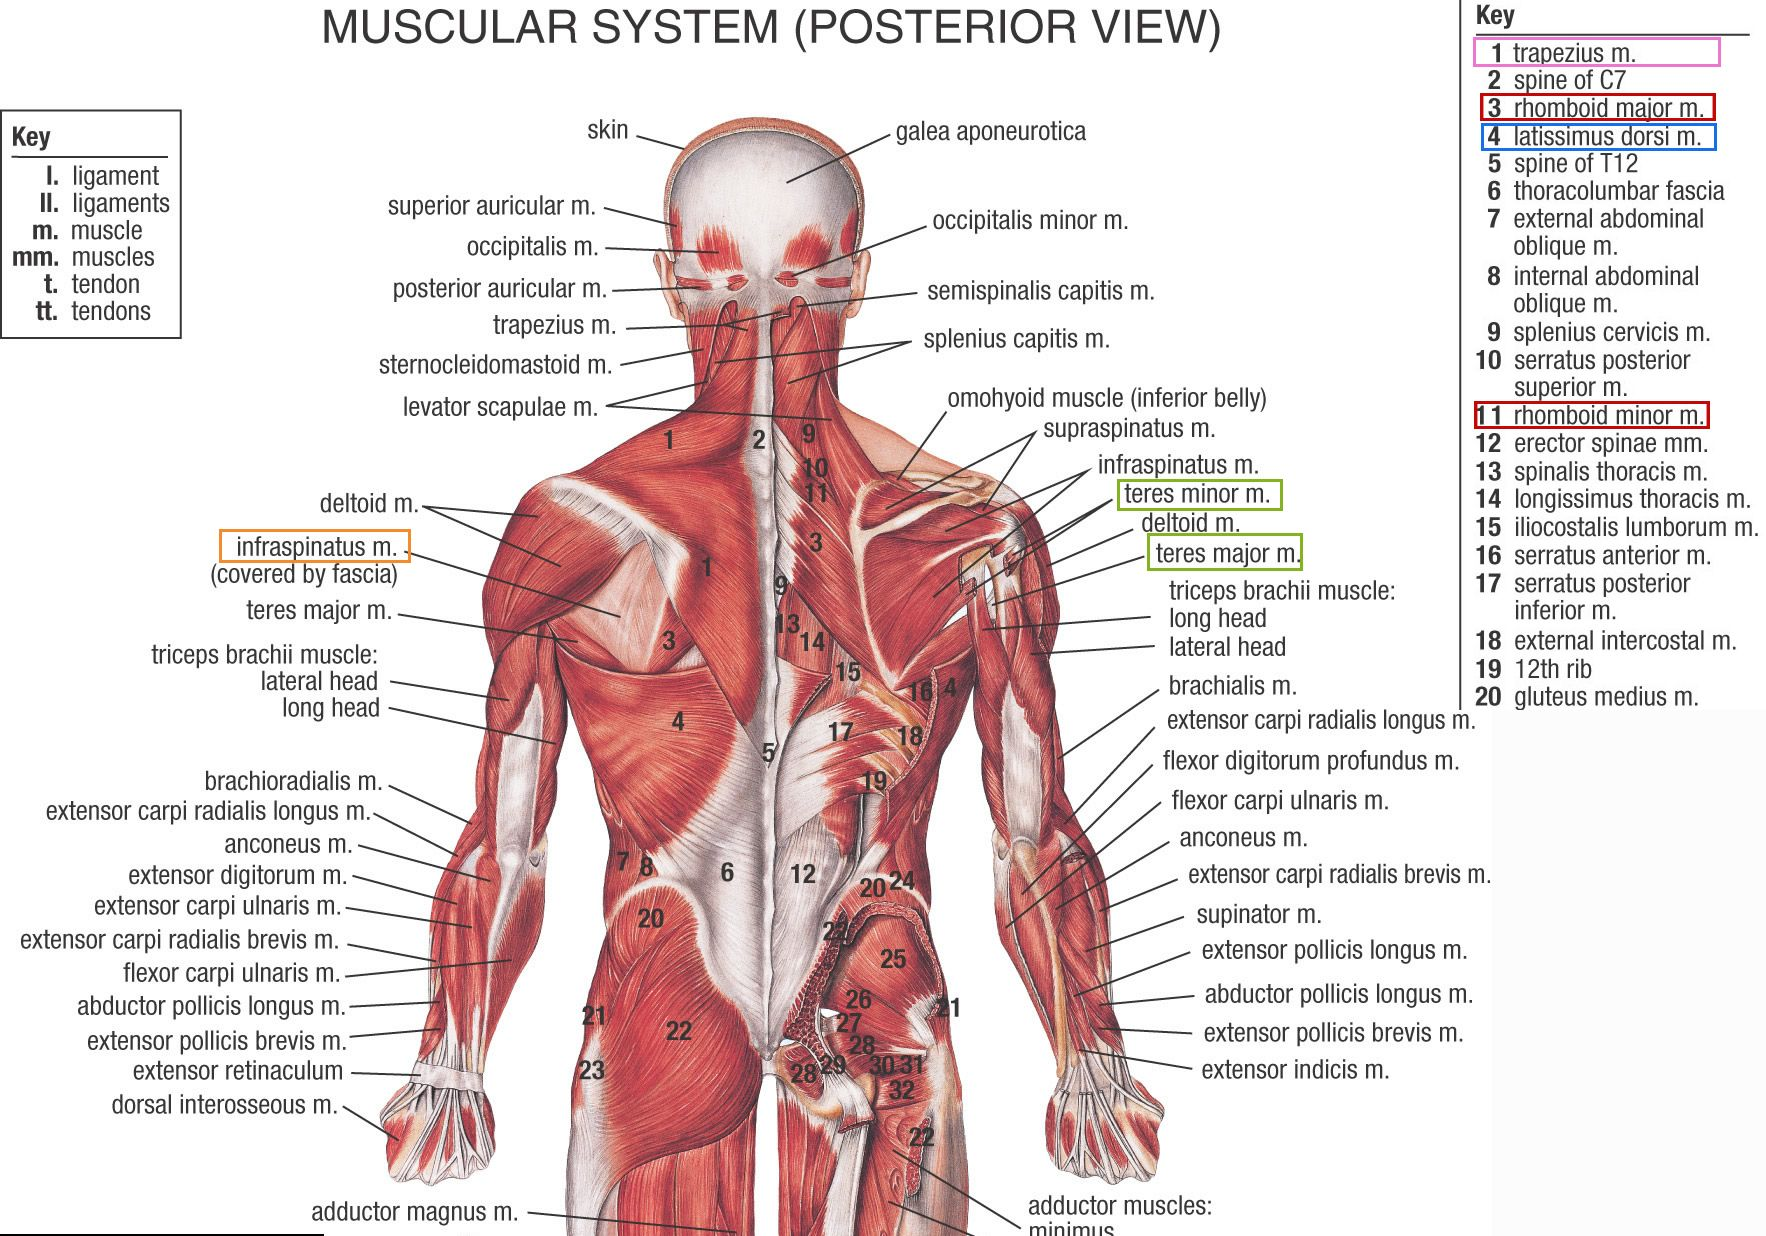 Muscles Ligaments And Tendons Of The Human Back Nerd Pinterest